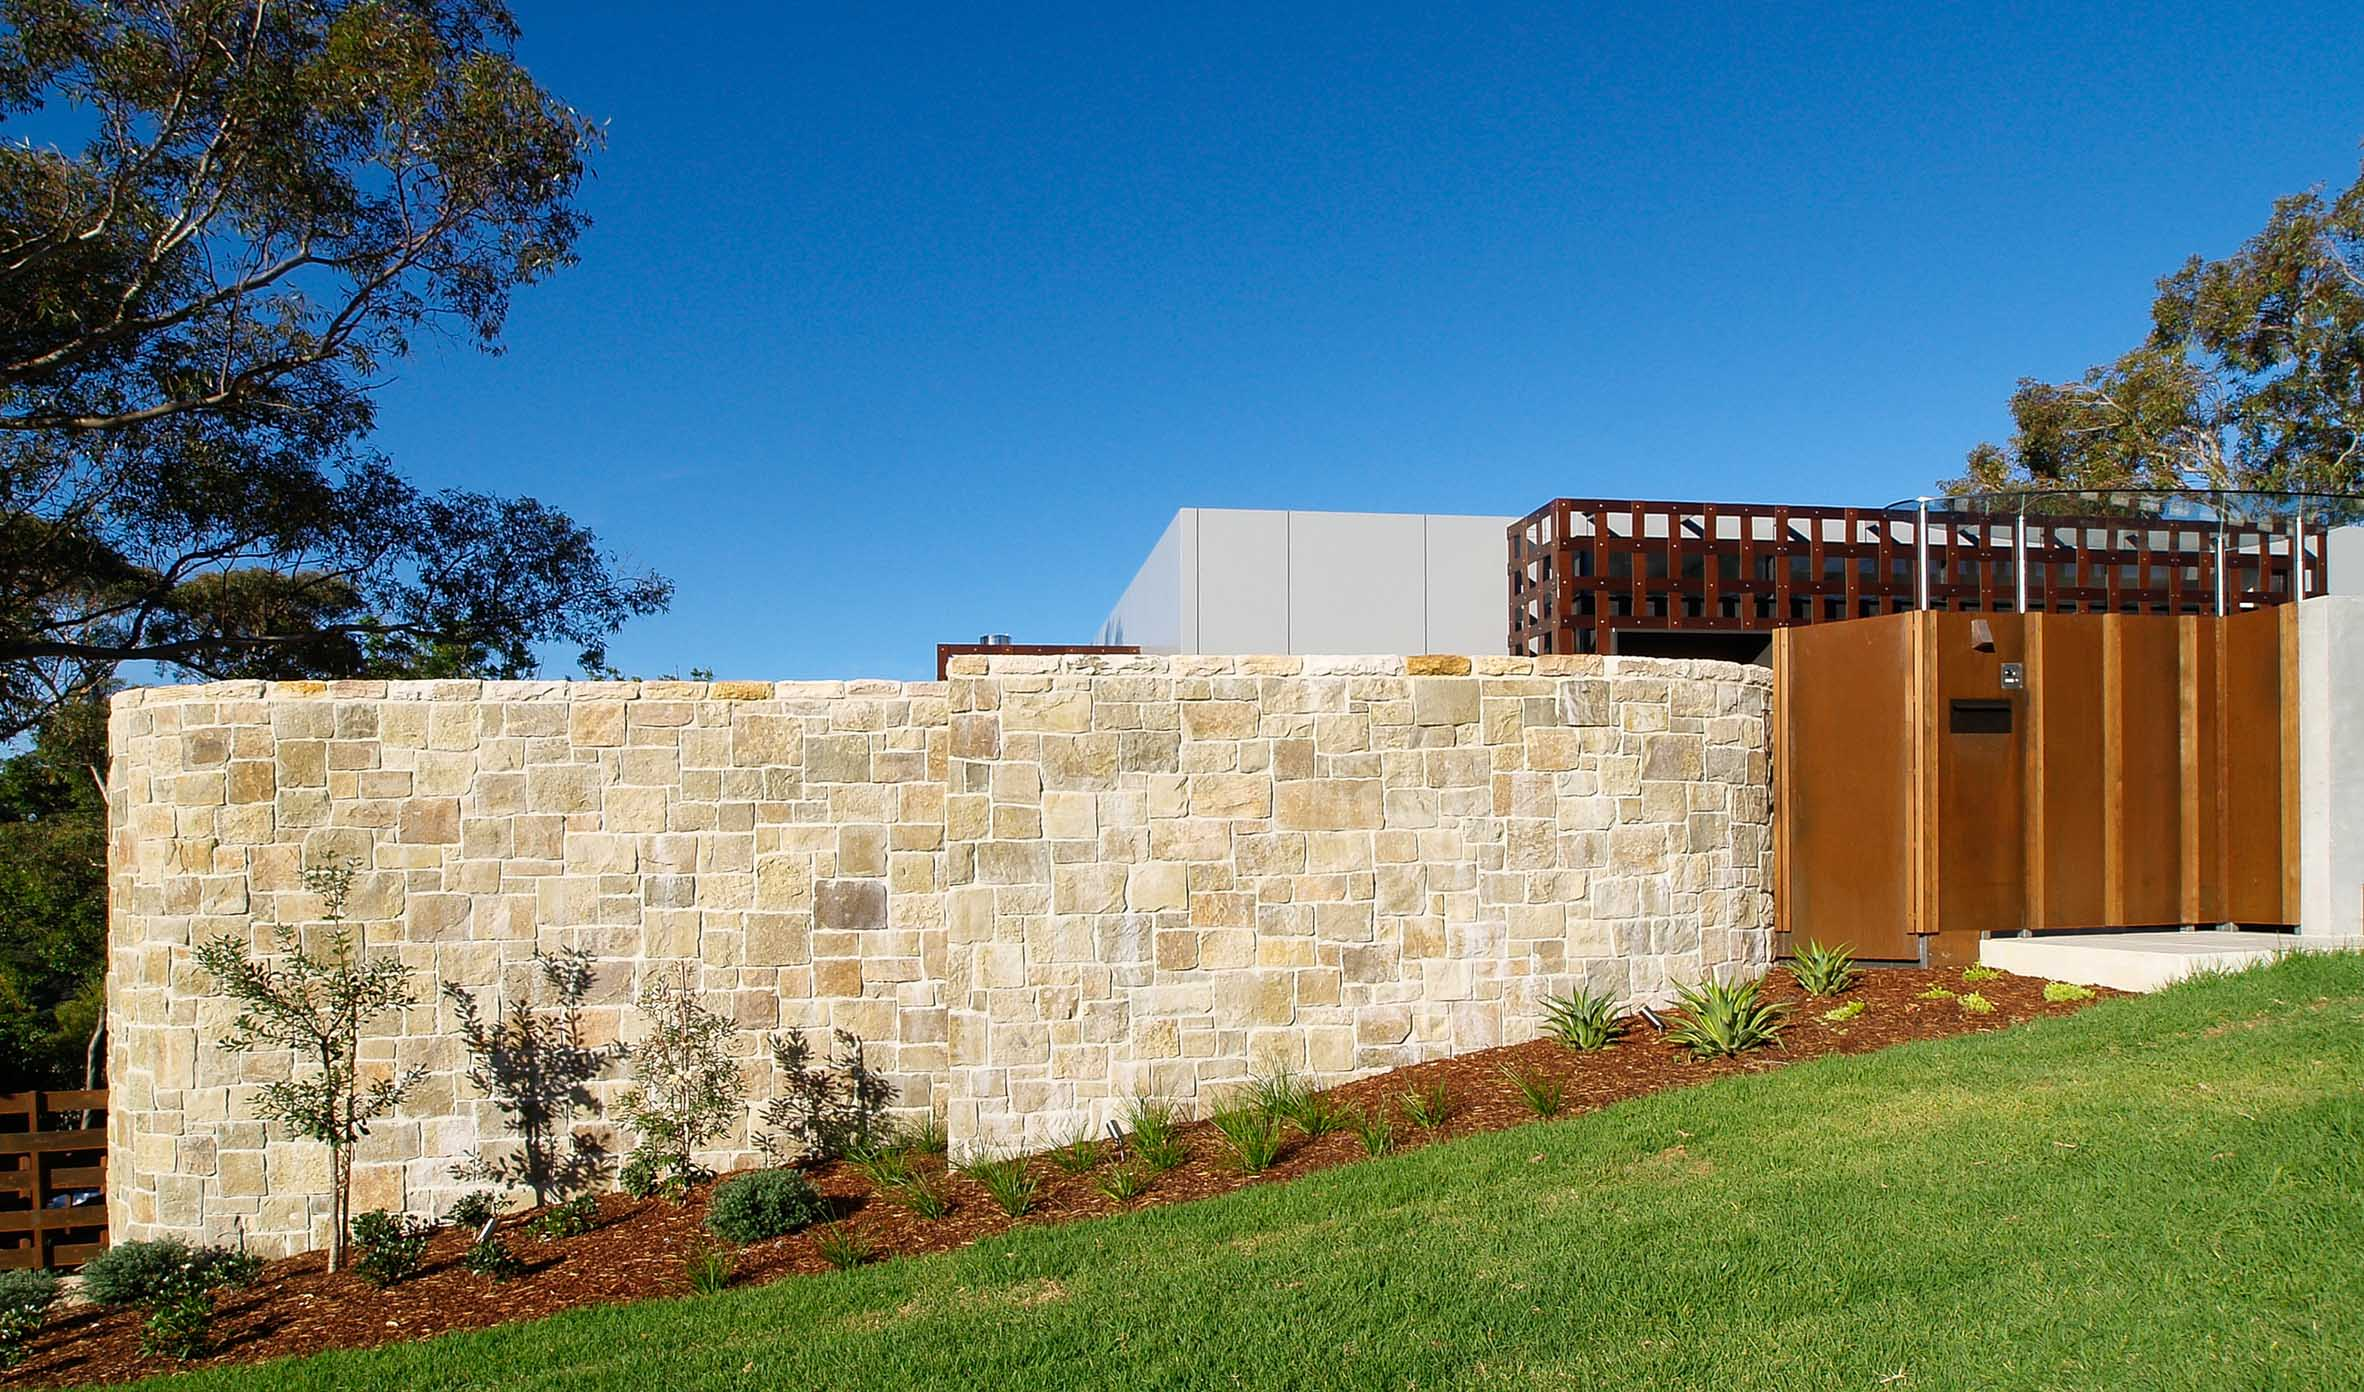 Wall-Cladding-and-Stacked-Stones Thumbnails wall-cladding-and-stacked-stones-14